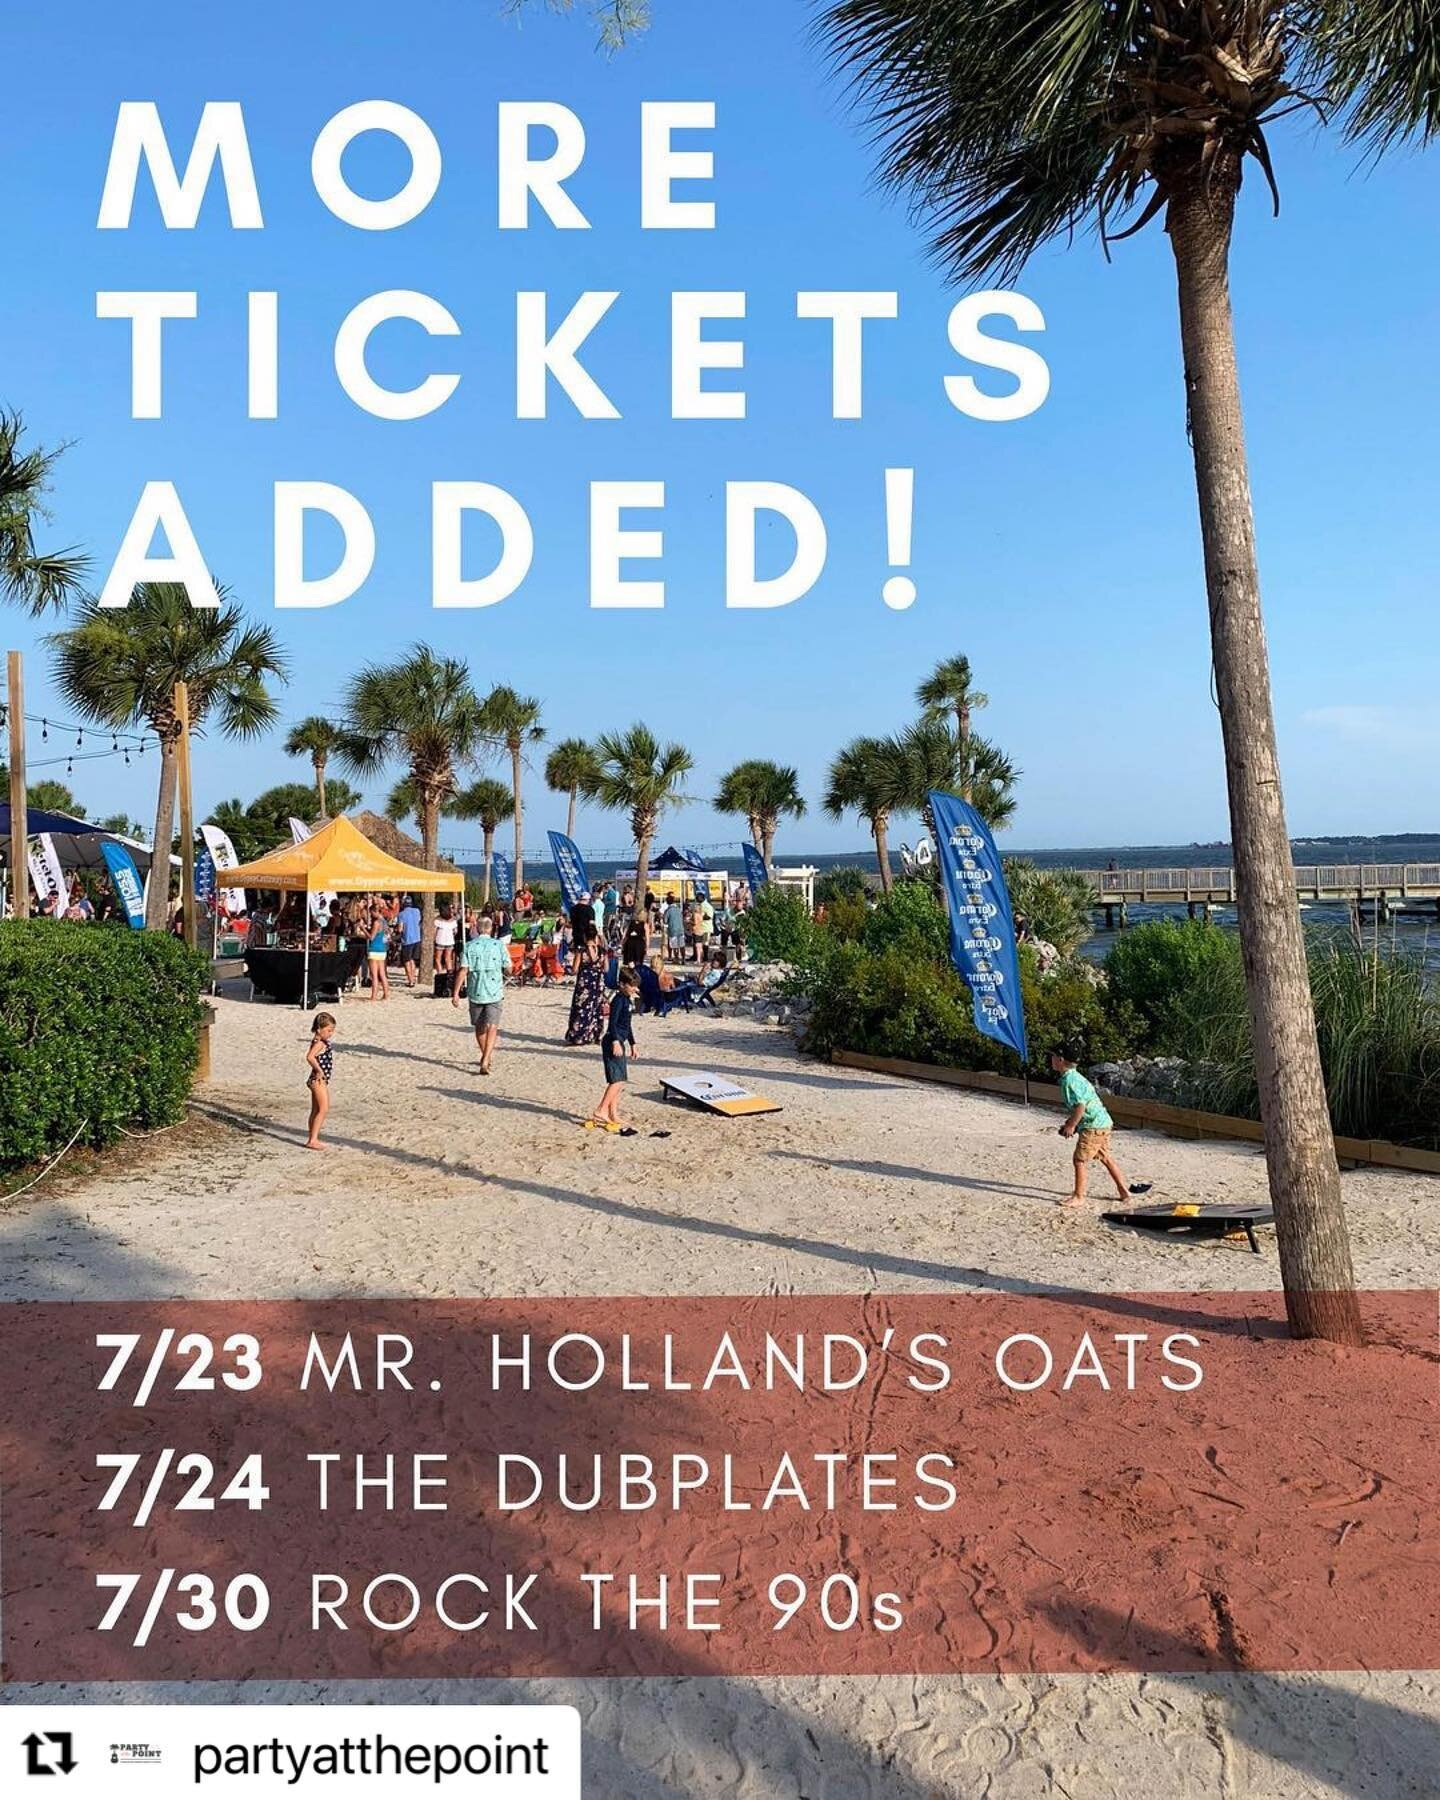 Good news, Charleston! We've just been approved to release a limited amount of tickets for upcoming shows that were previously sold out:  @mrhollandsoats this Friday  @thedubplates this Saturday @rockthe90sofficial next Friday 7/30  Stay tuned for new show announcements next week (!!) and grab your tickets at the link in our bio!